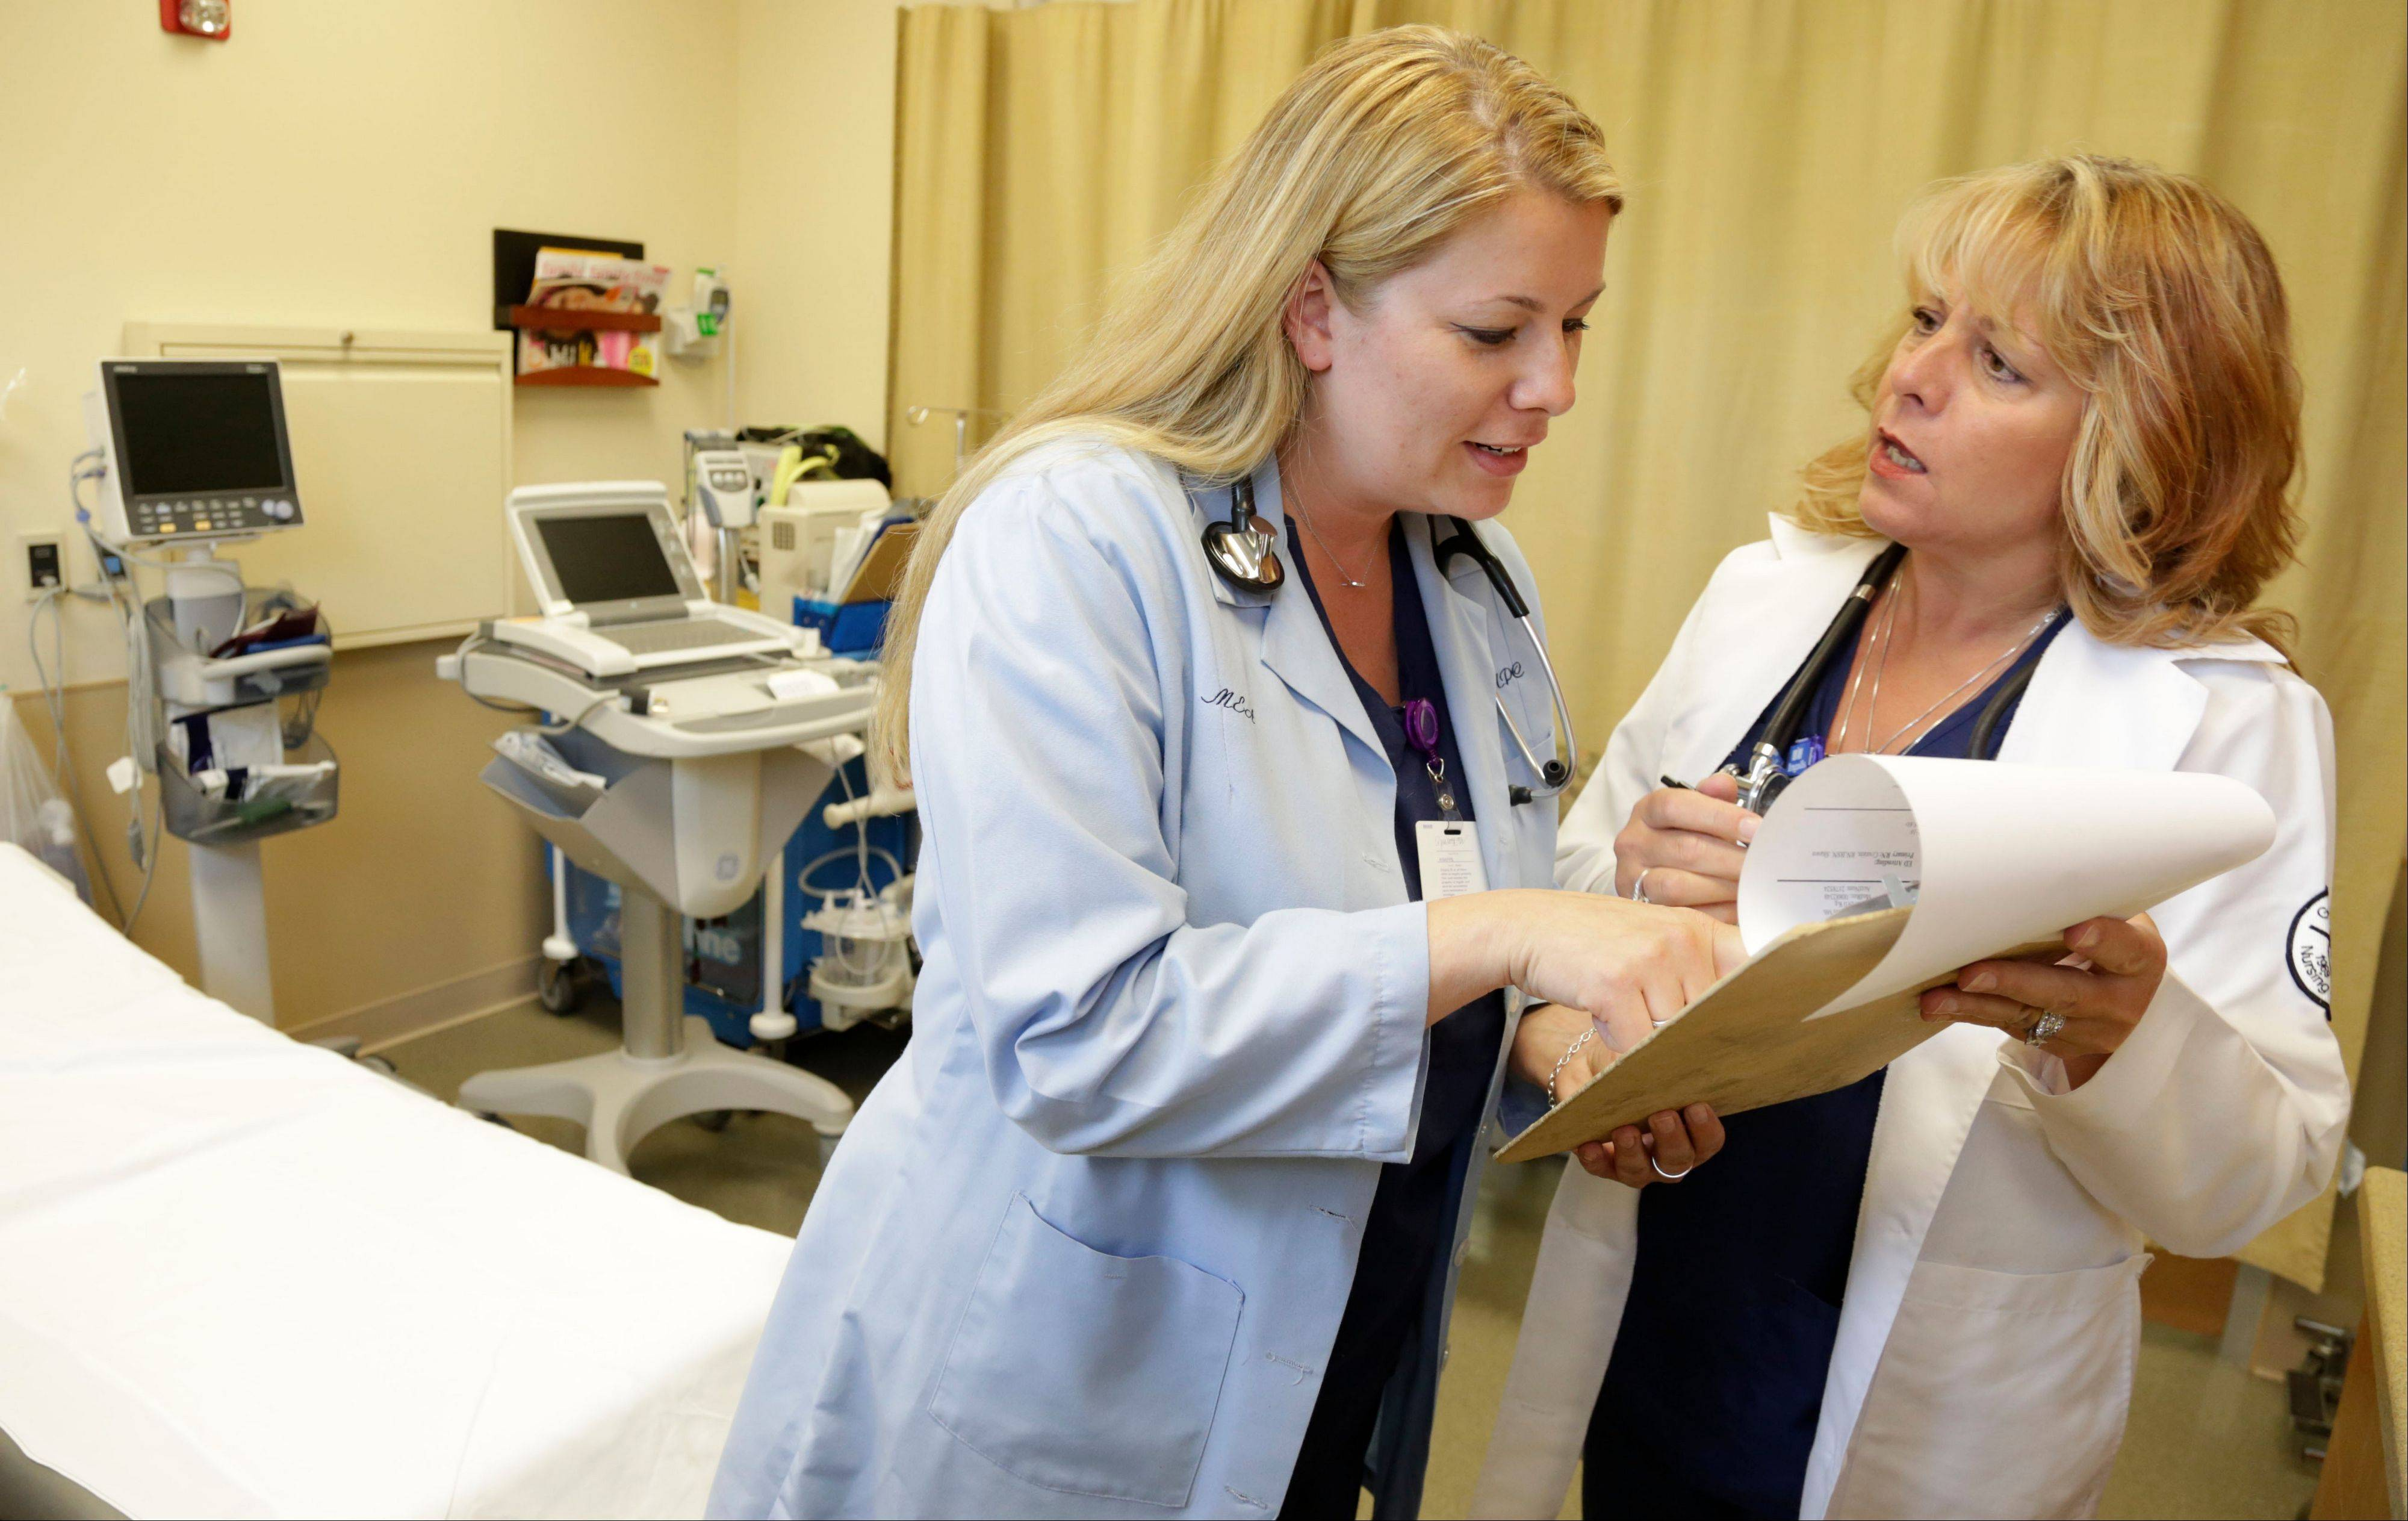 Nurse practitioners Michele Knappe, left, and Julie Zimmer go over a patient's chart Tuesday at Ingalls Family Care Center in Flossmoor. Illinois lawmakers this spring rebuffed a variety of proposals that would have given more authority to nurses ahead of a surge of patients newly insured under President Obama's health law.